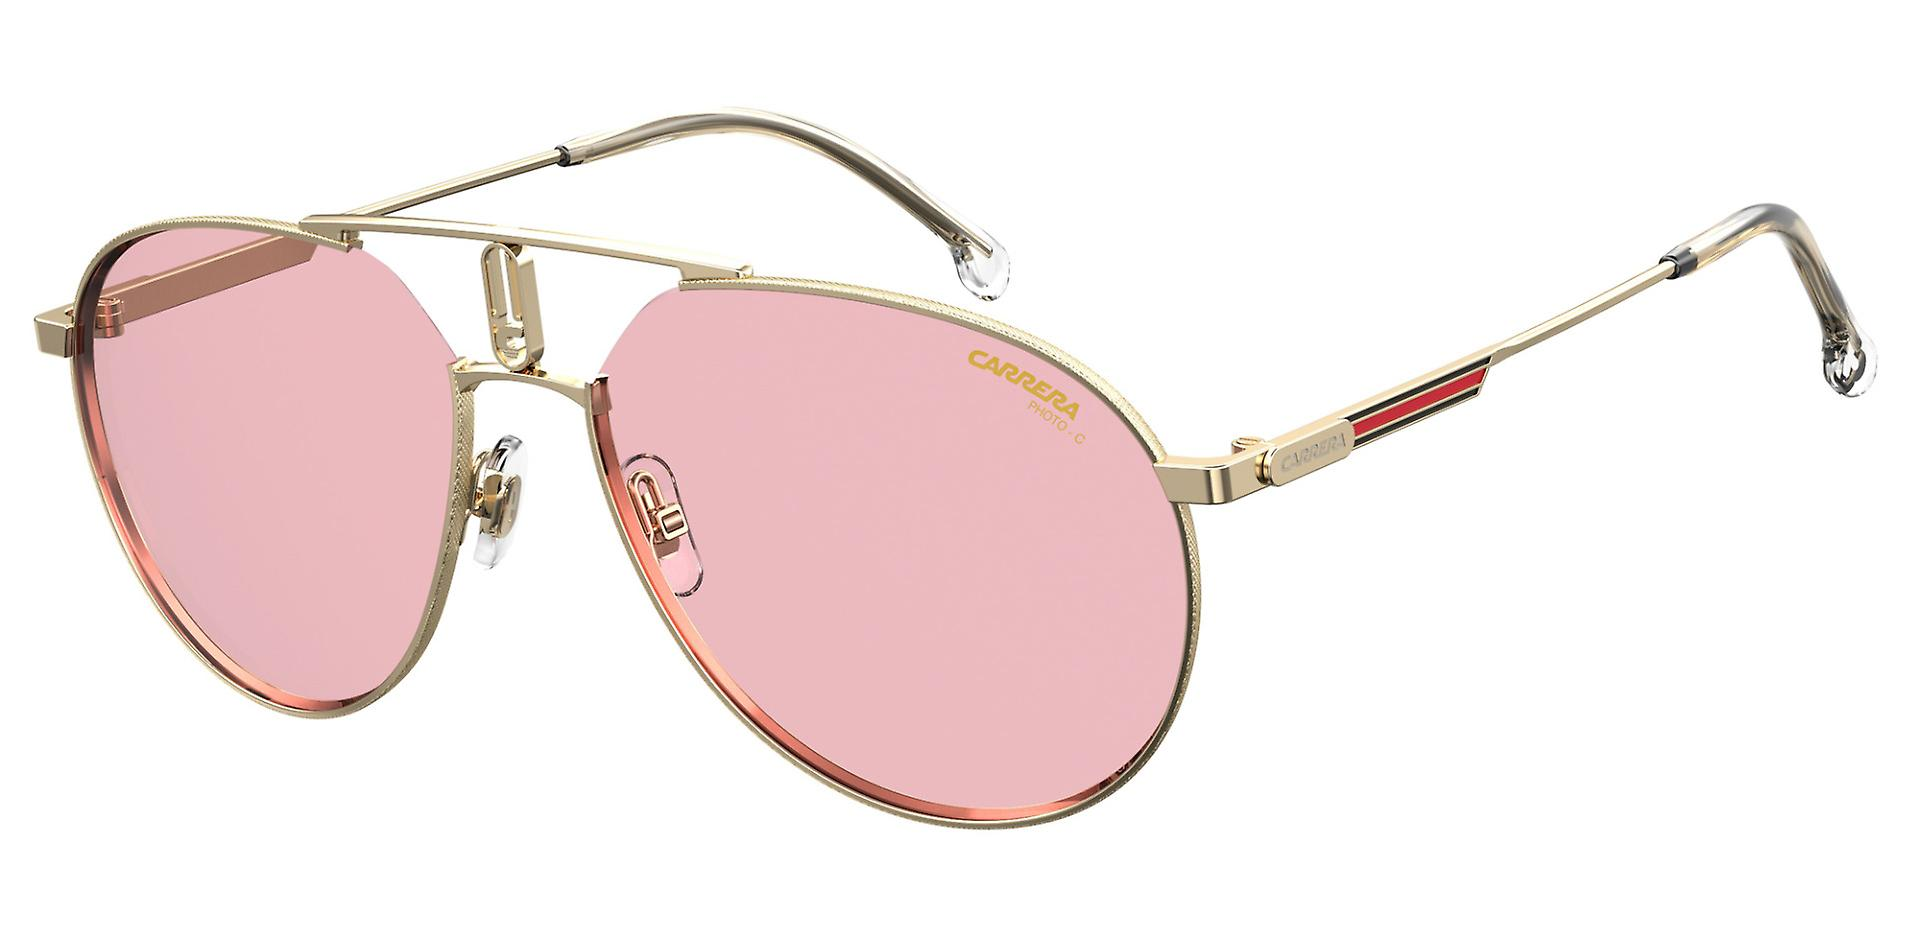 Carrera 1025/S EYR/Q4 Gold-Pink/Pink Sunglasses